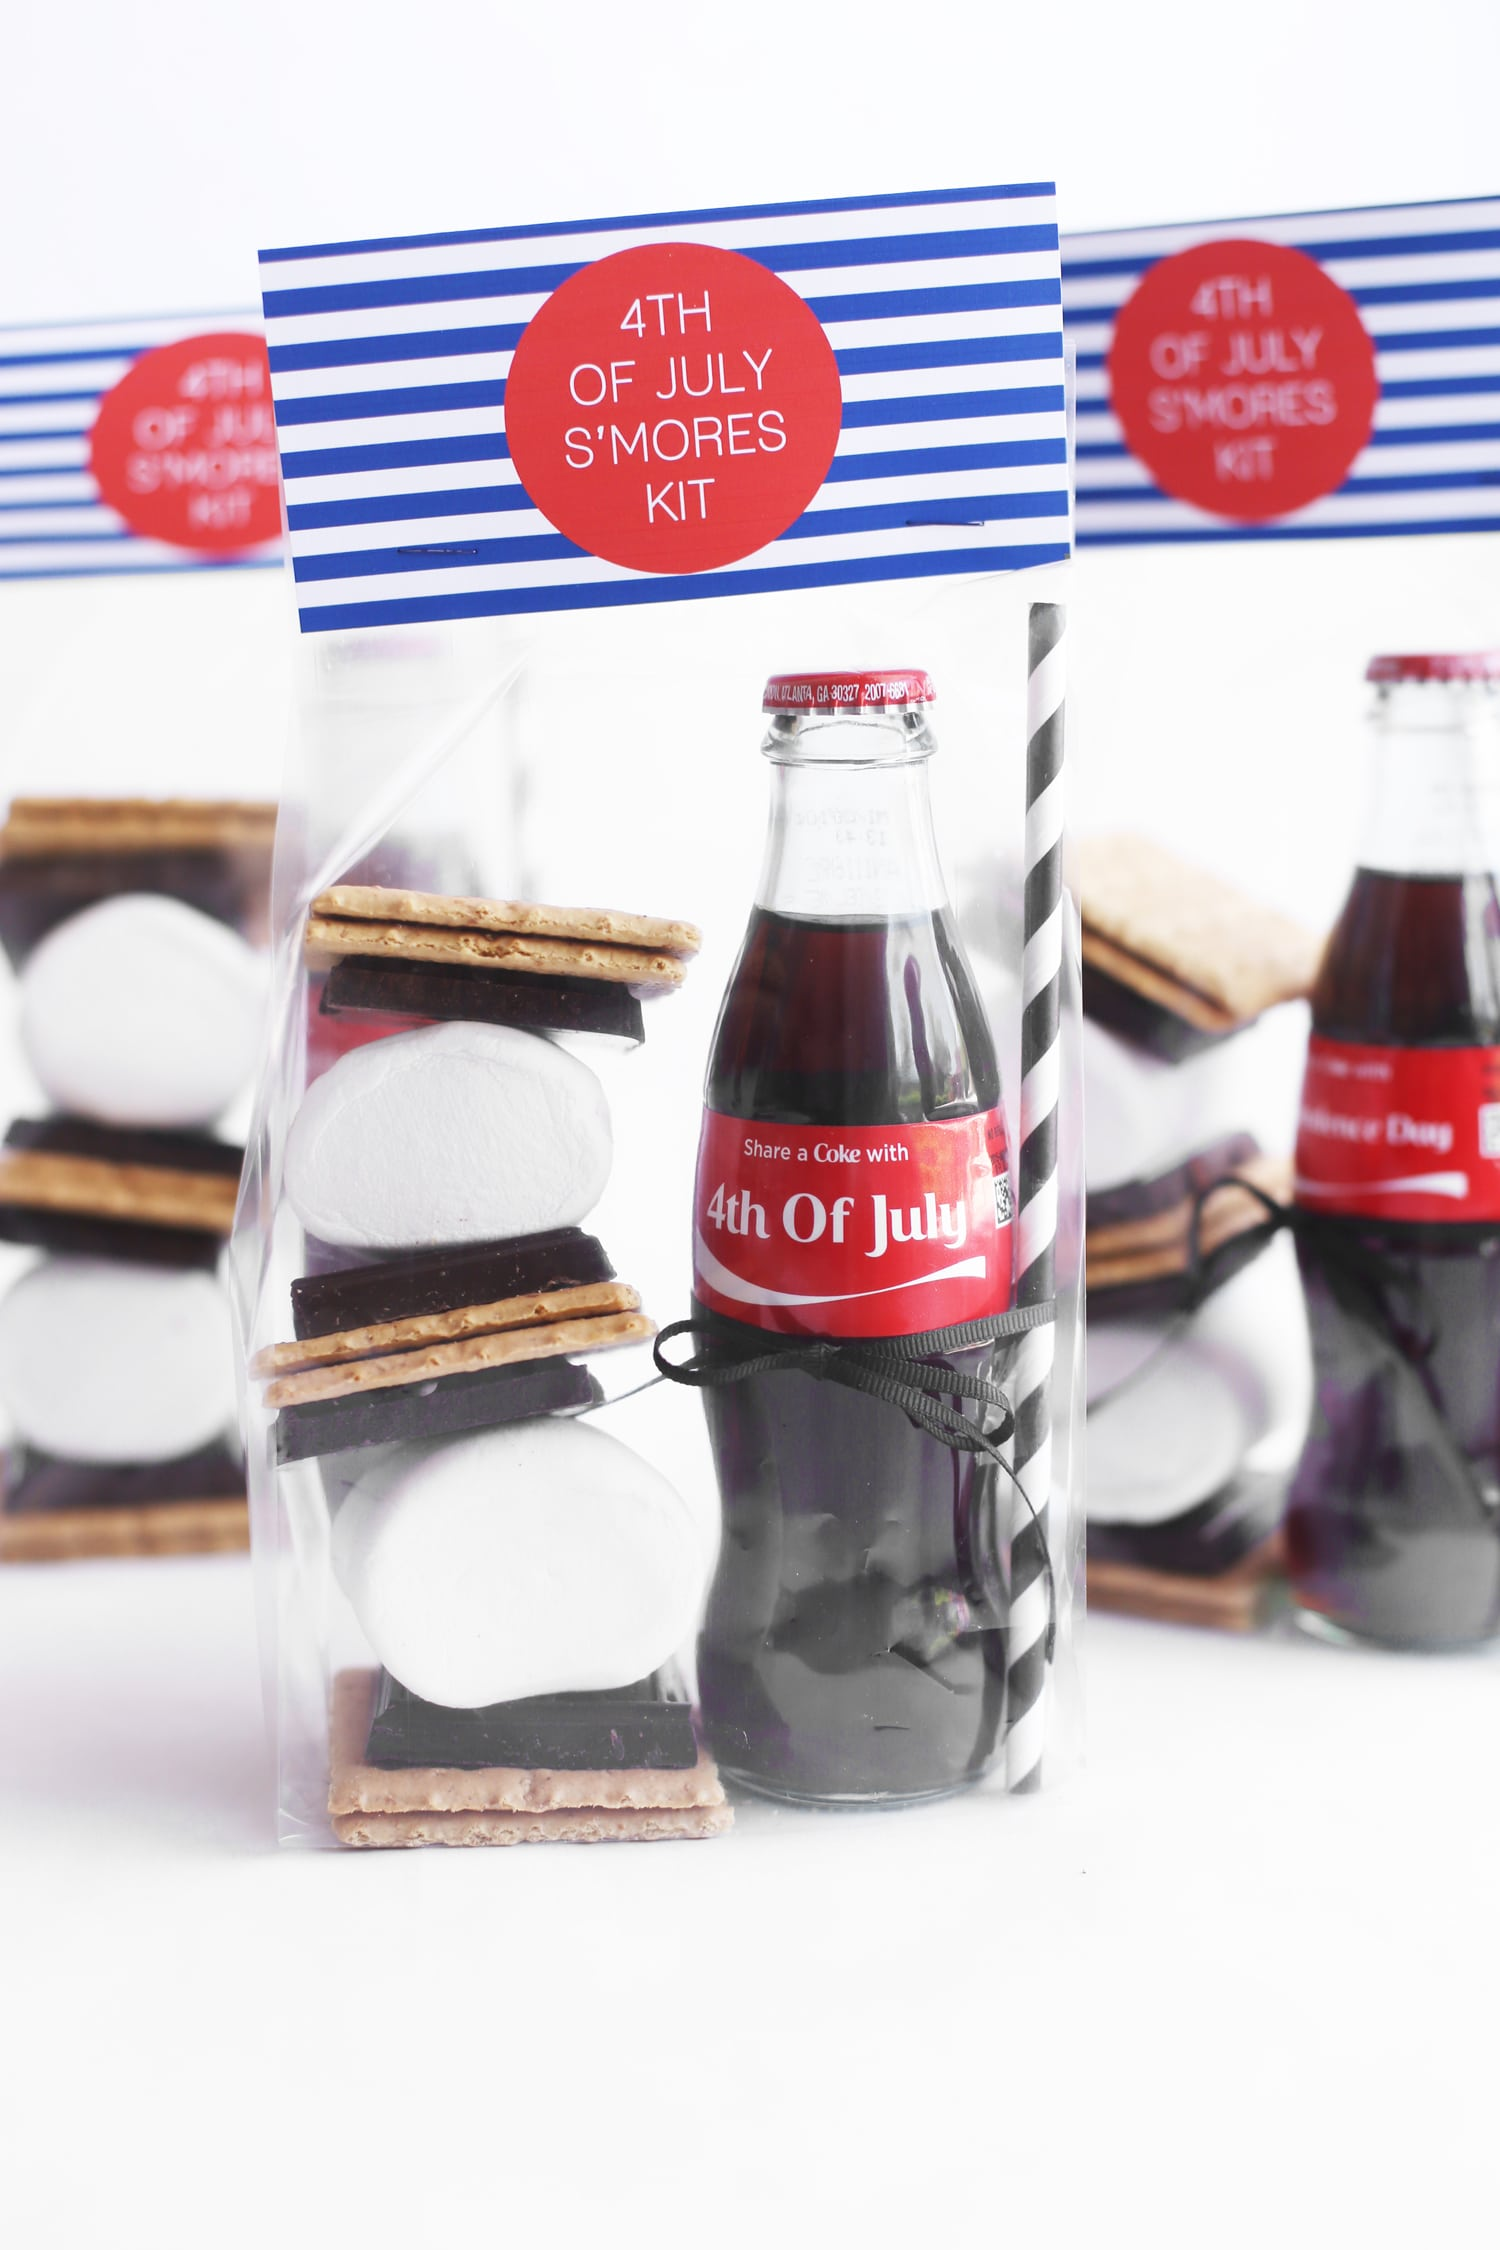 Red, White and Blue S'mores Kits | 4th of July decorations, 4th of July party ideas and more from @cydconverse